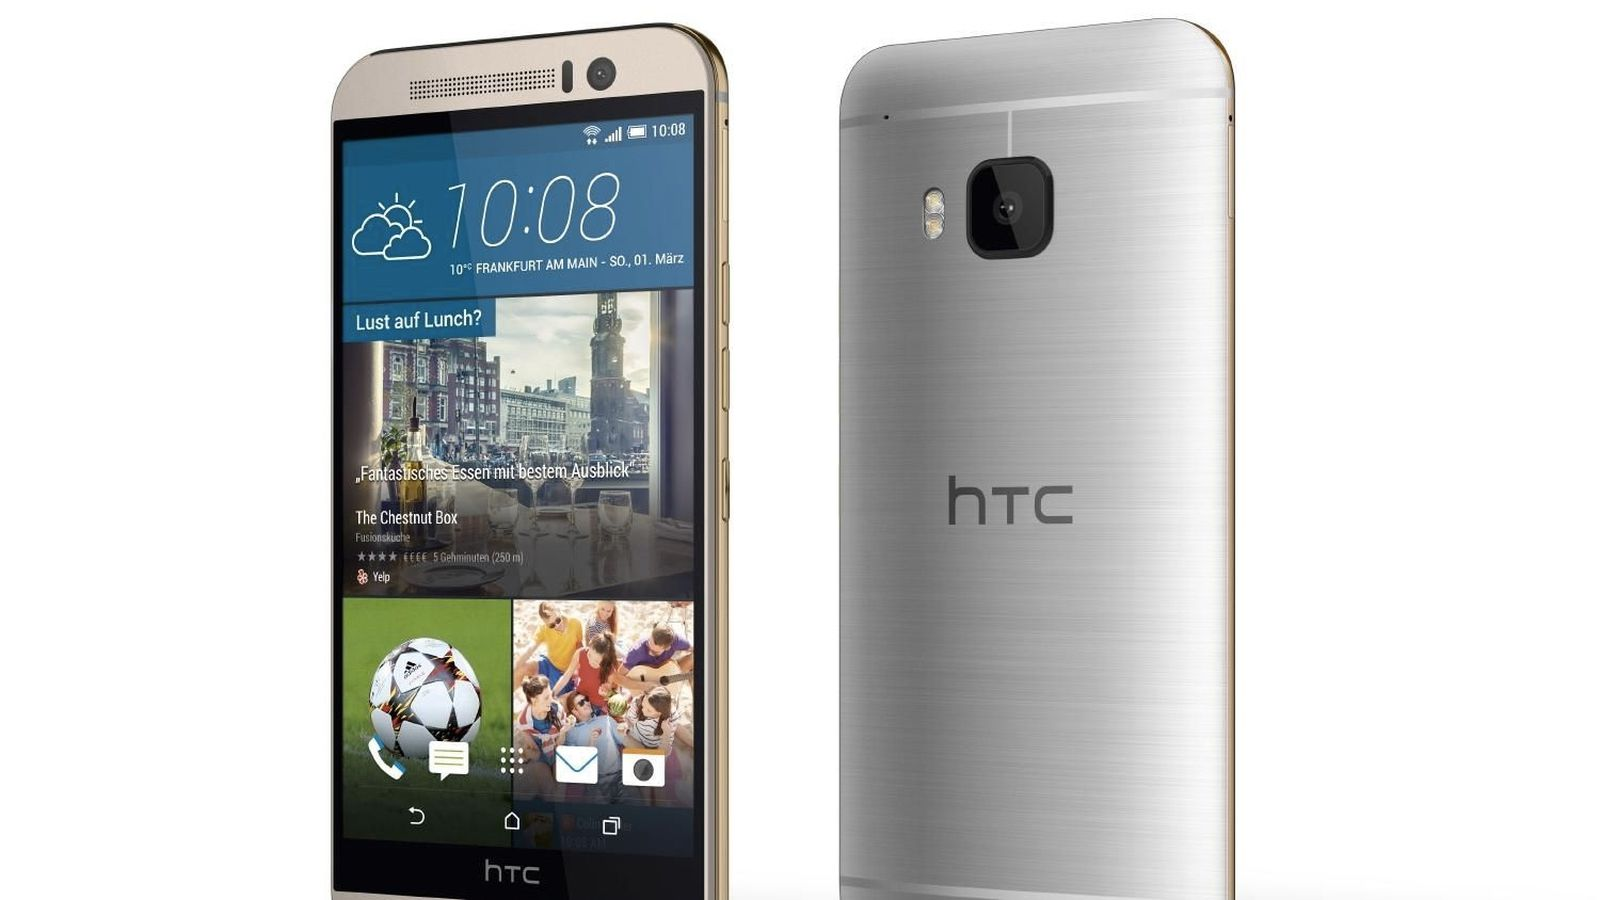 hight resolution of techmeme htc one m9 pics and specs leak ahead of march 1st launch will feature a 2ghz snapdragon 810 cpu 3gb of ram 5 inch 1080p display